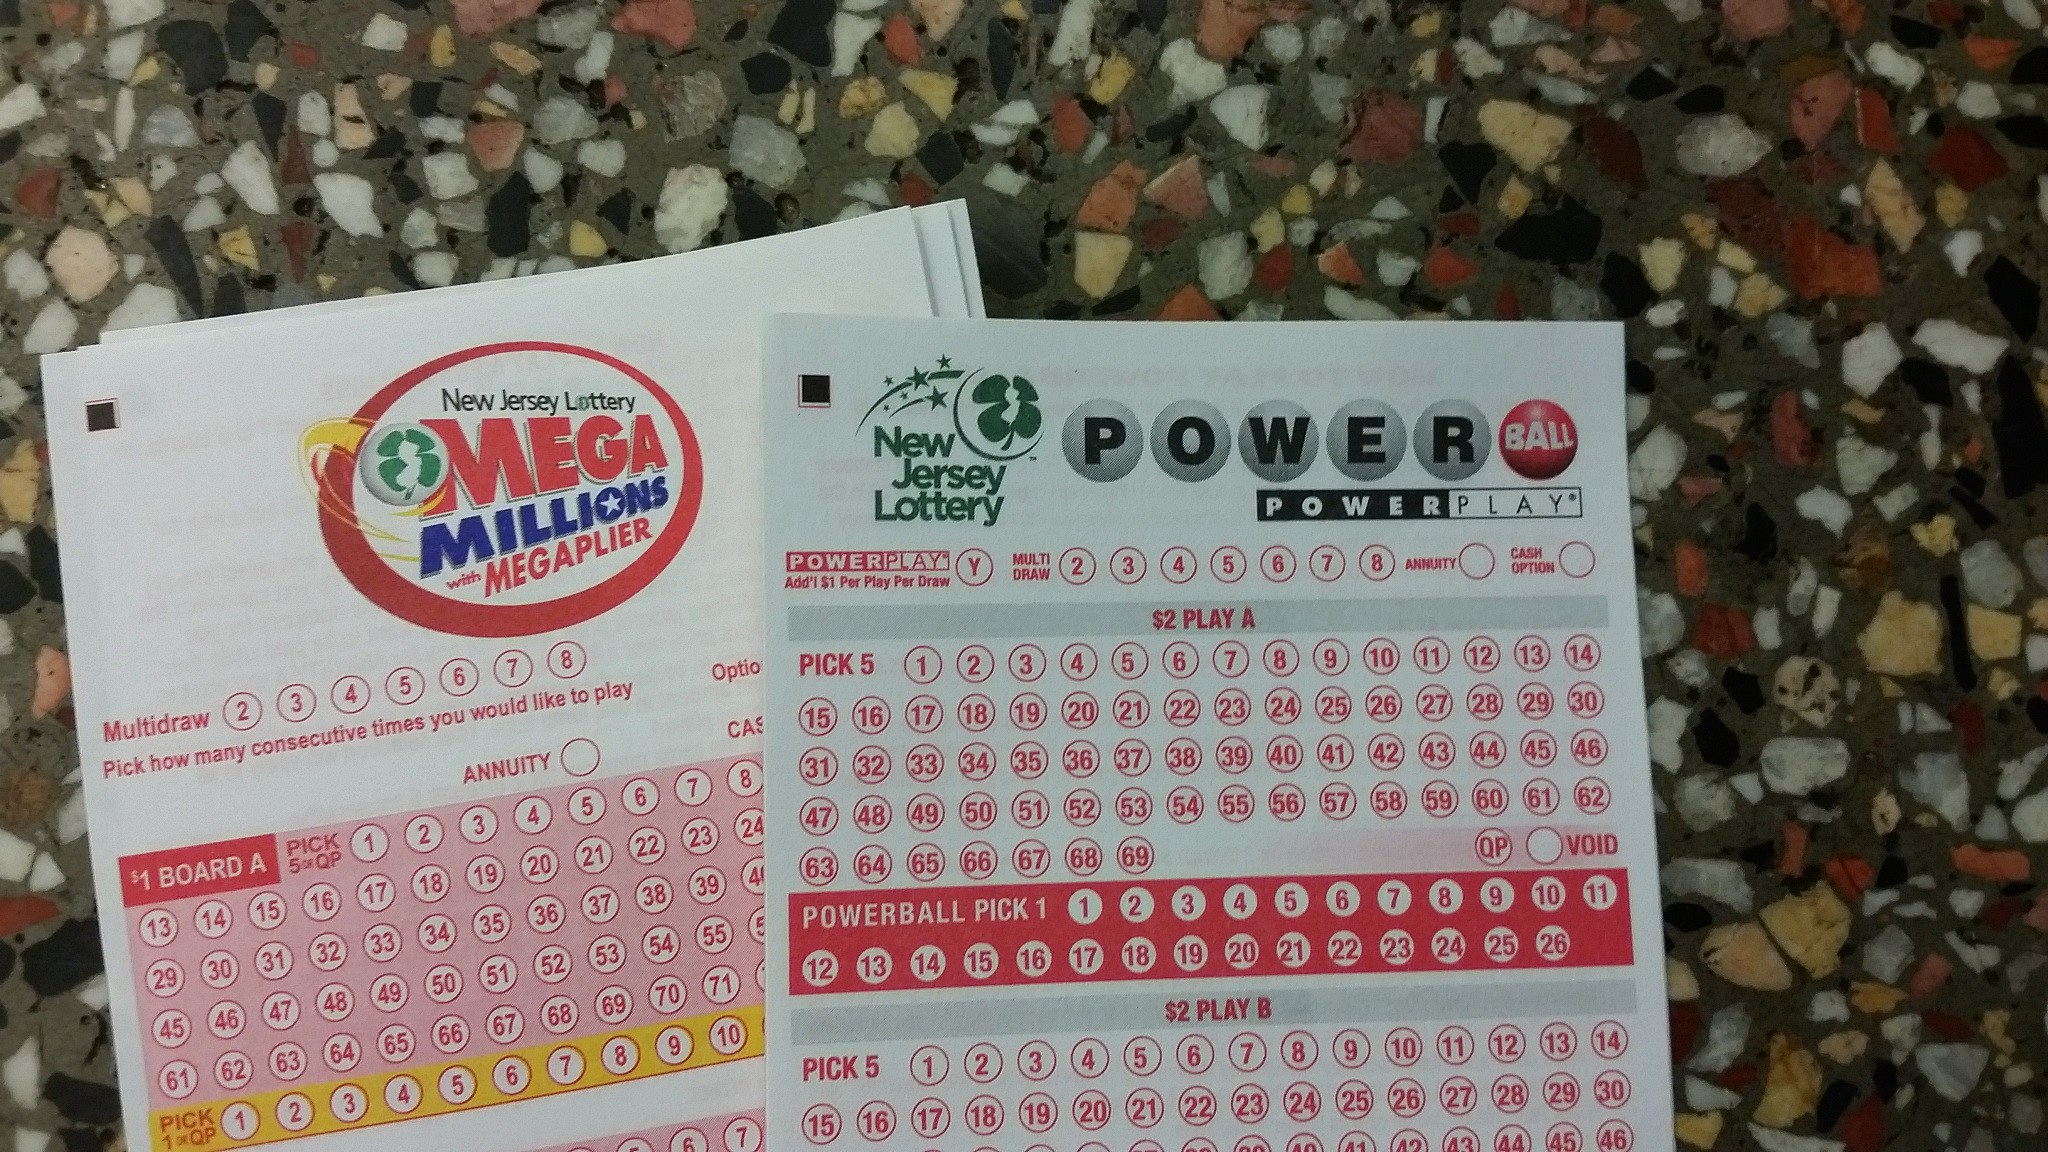 Powerball, Mega Millions jackpots both over $300 million